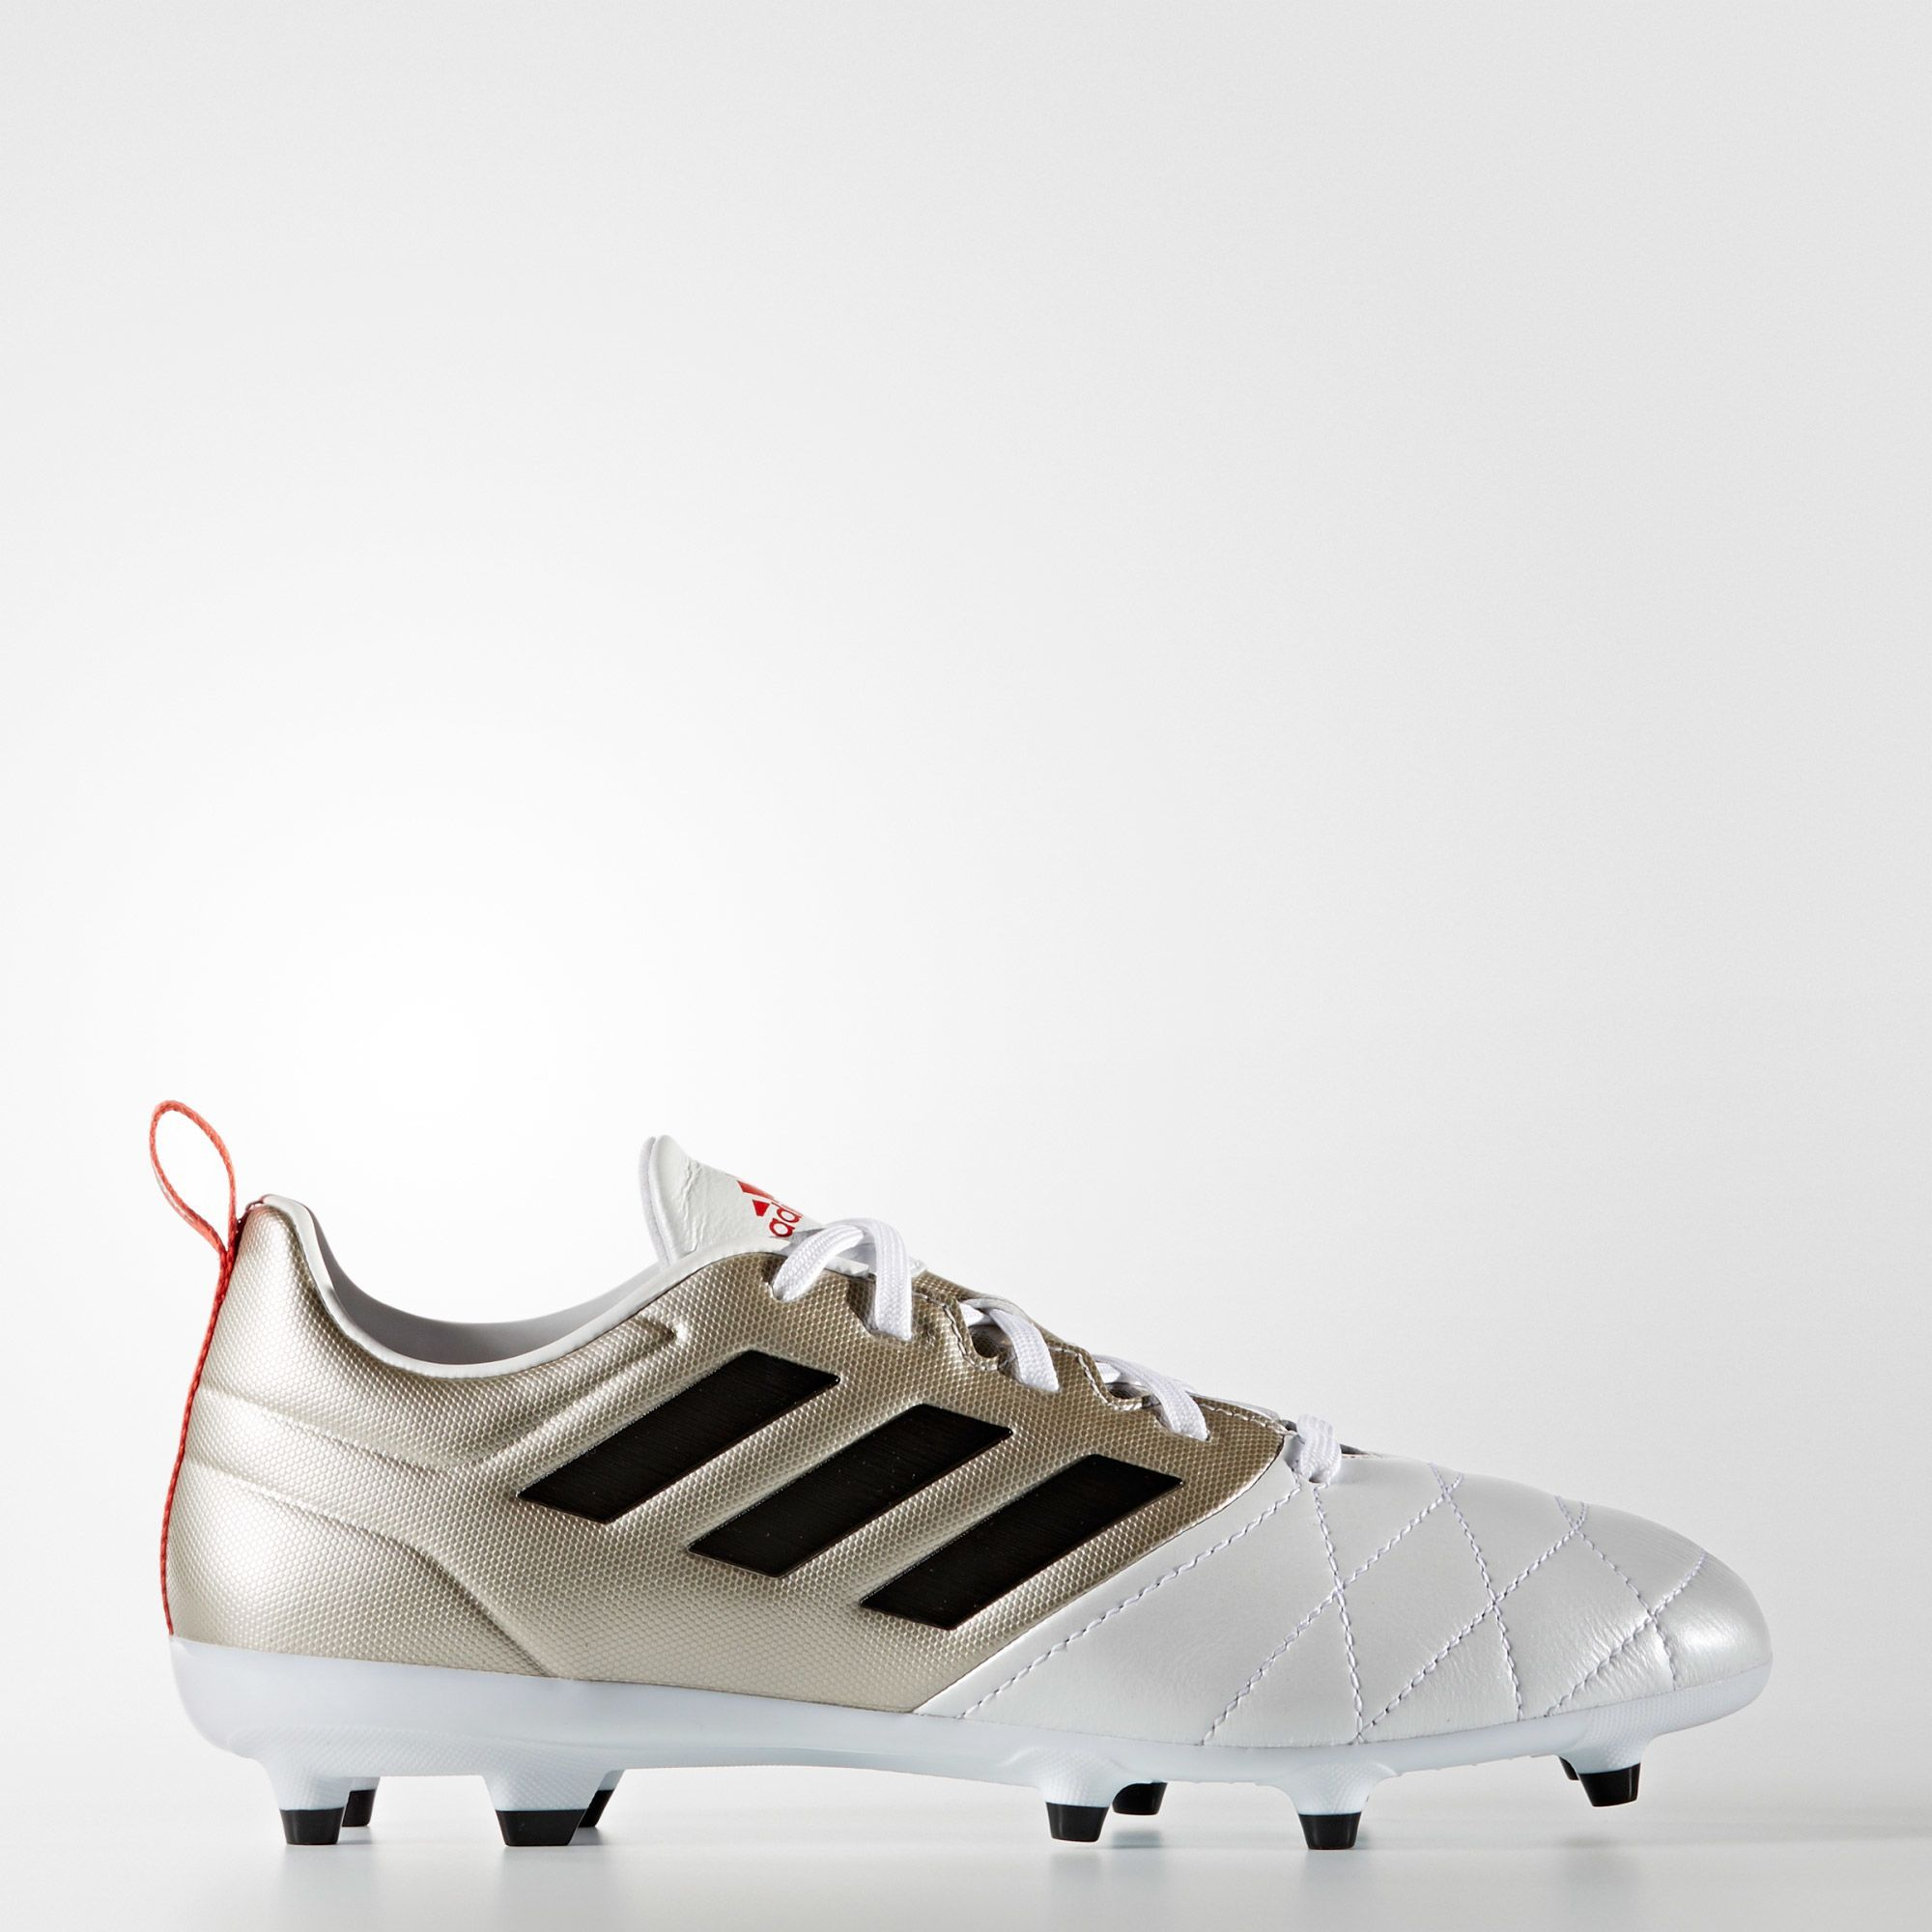 adidas - ACE 17.3 Firm Ground Cleats